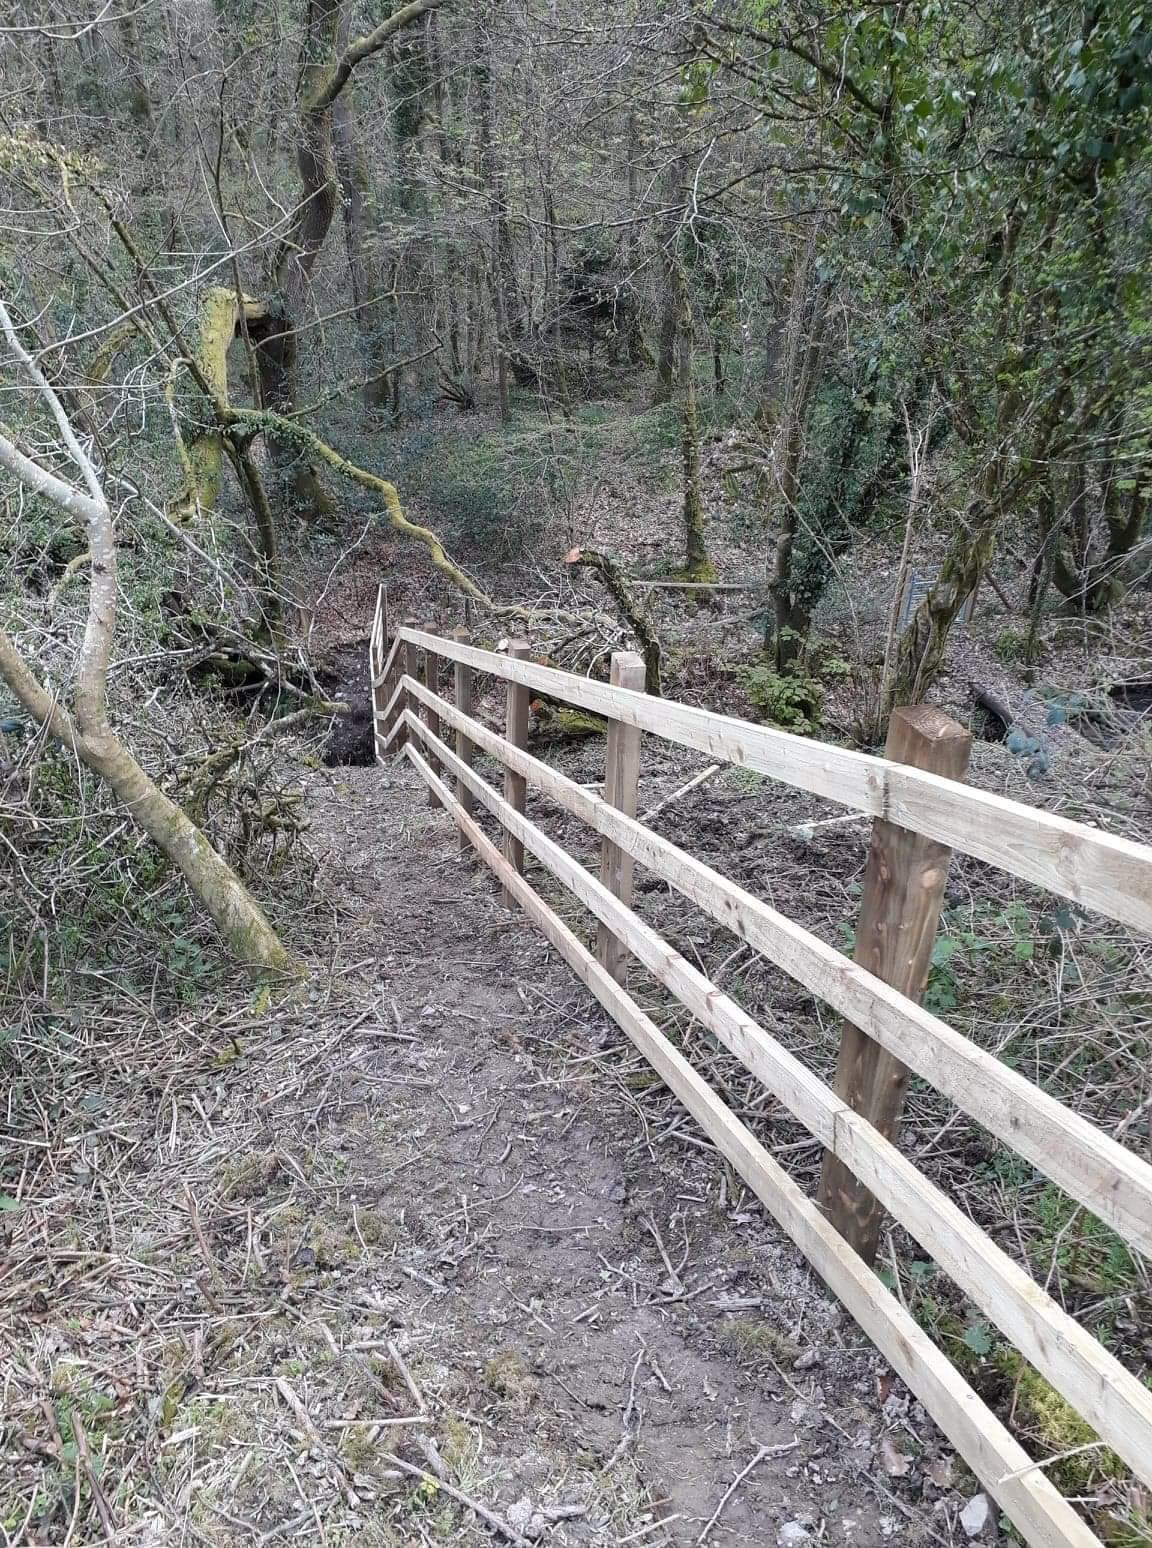 Post and rail fencing going downhill